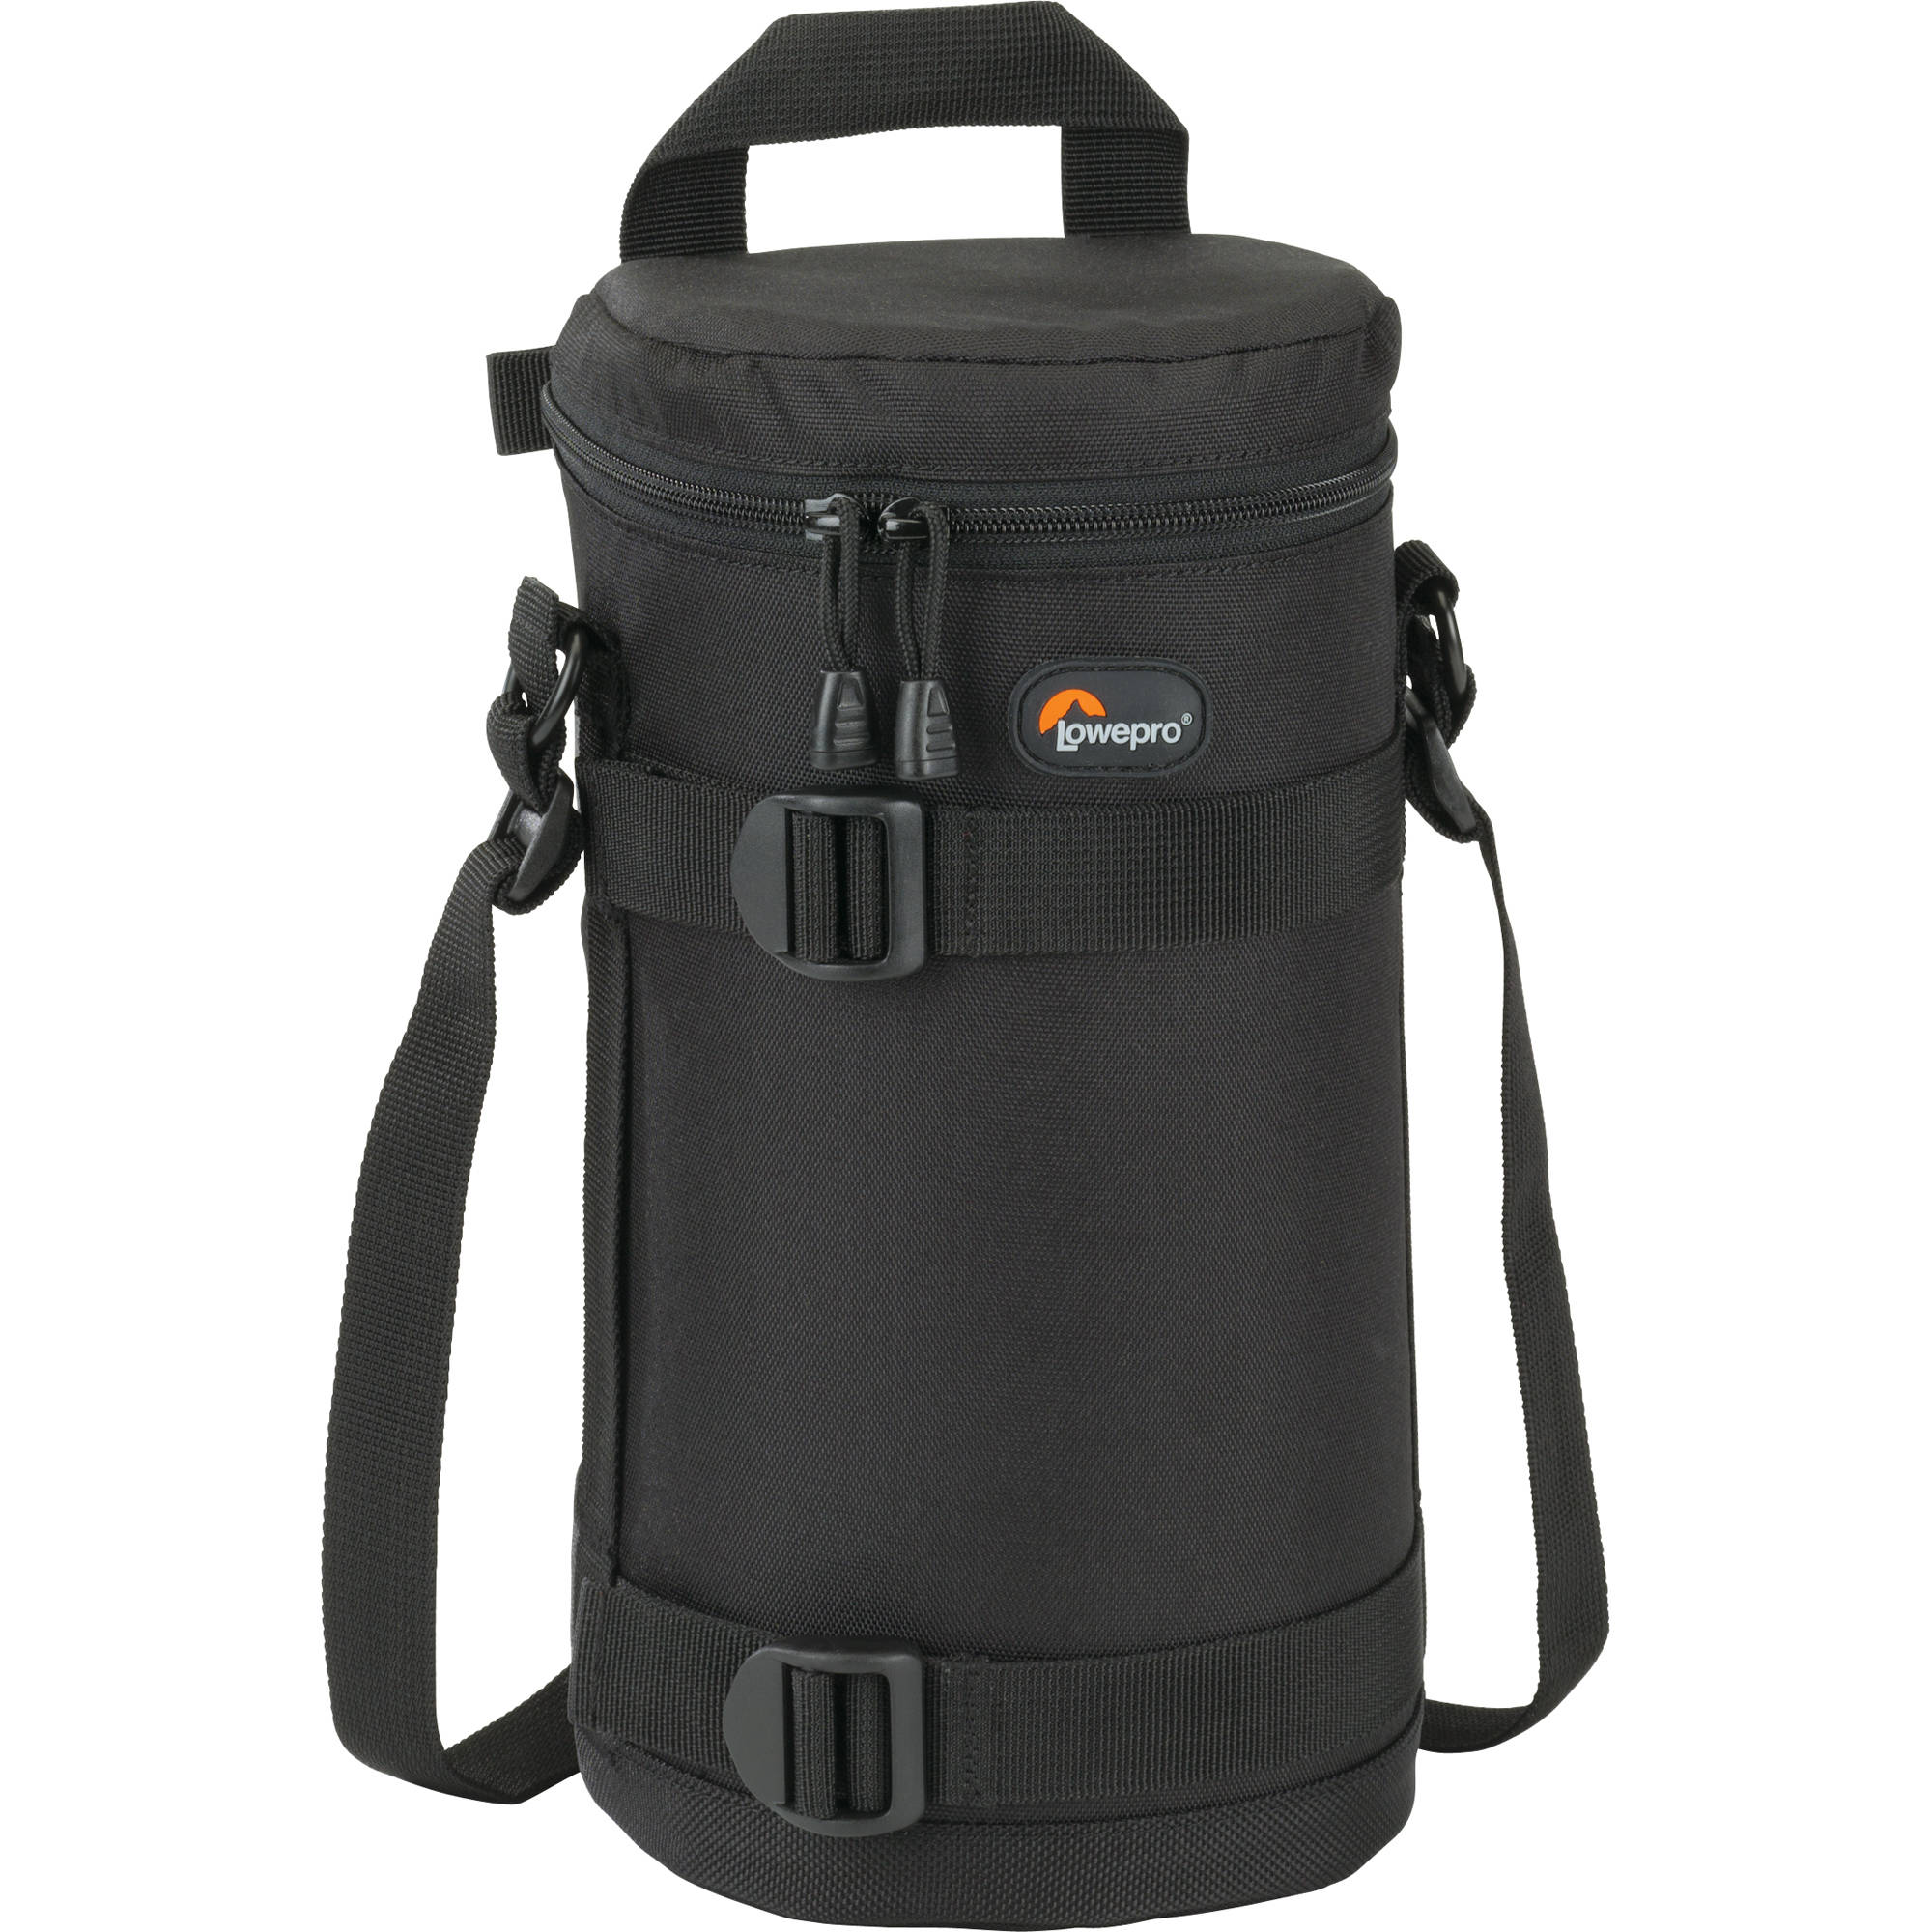 Lowepro Compact Zoom Lens Case 8x12cm Black